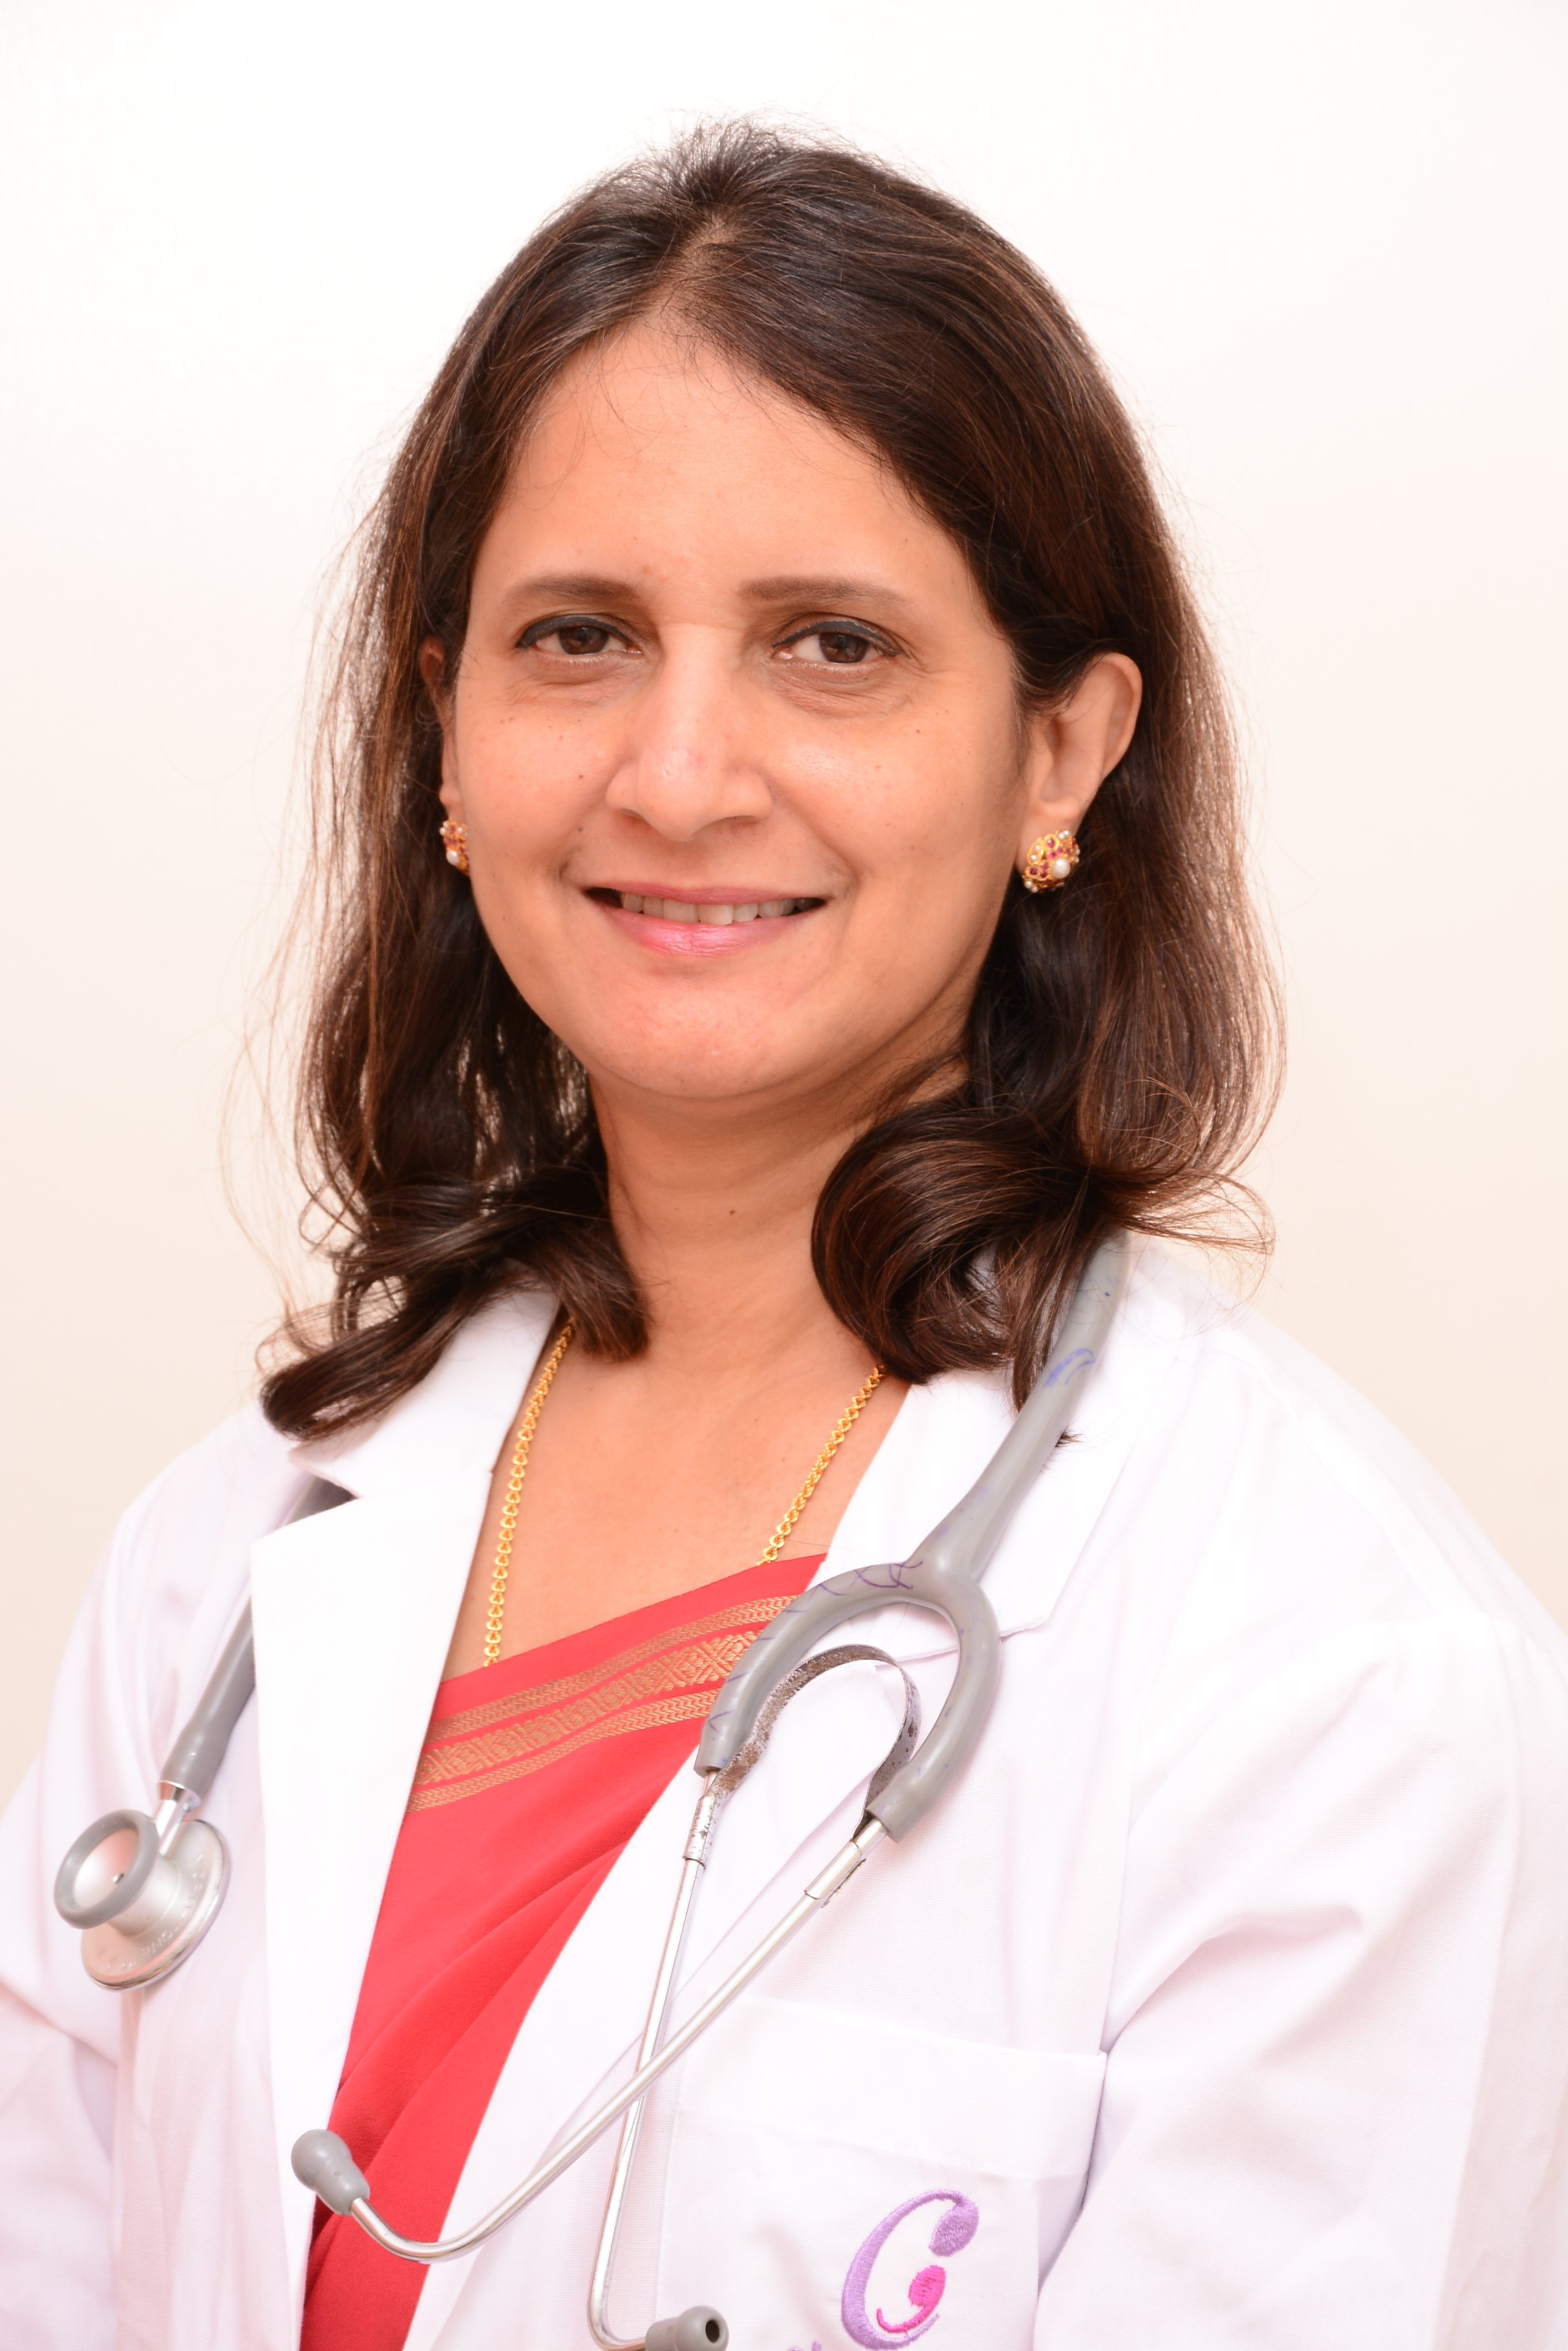 Dr. Brunda Channapa